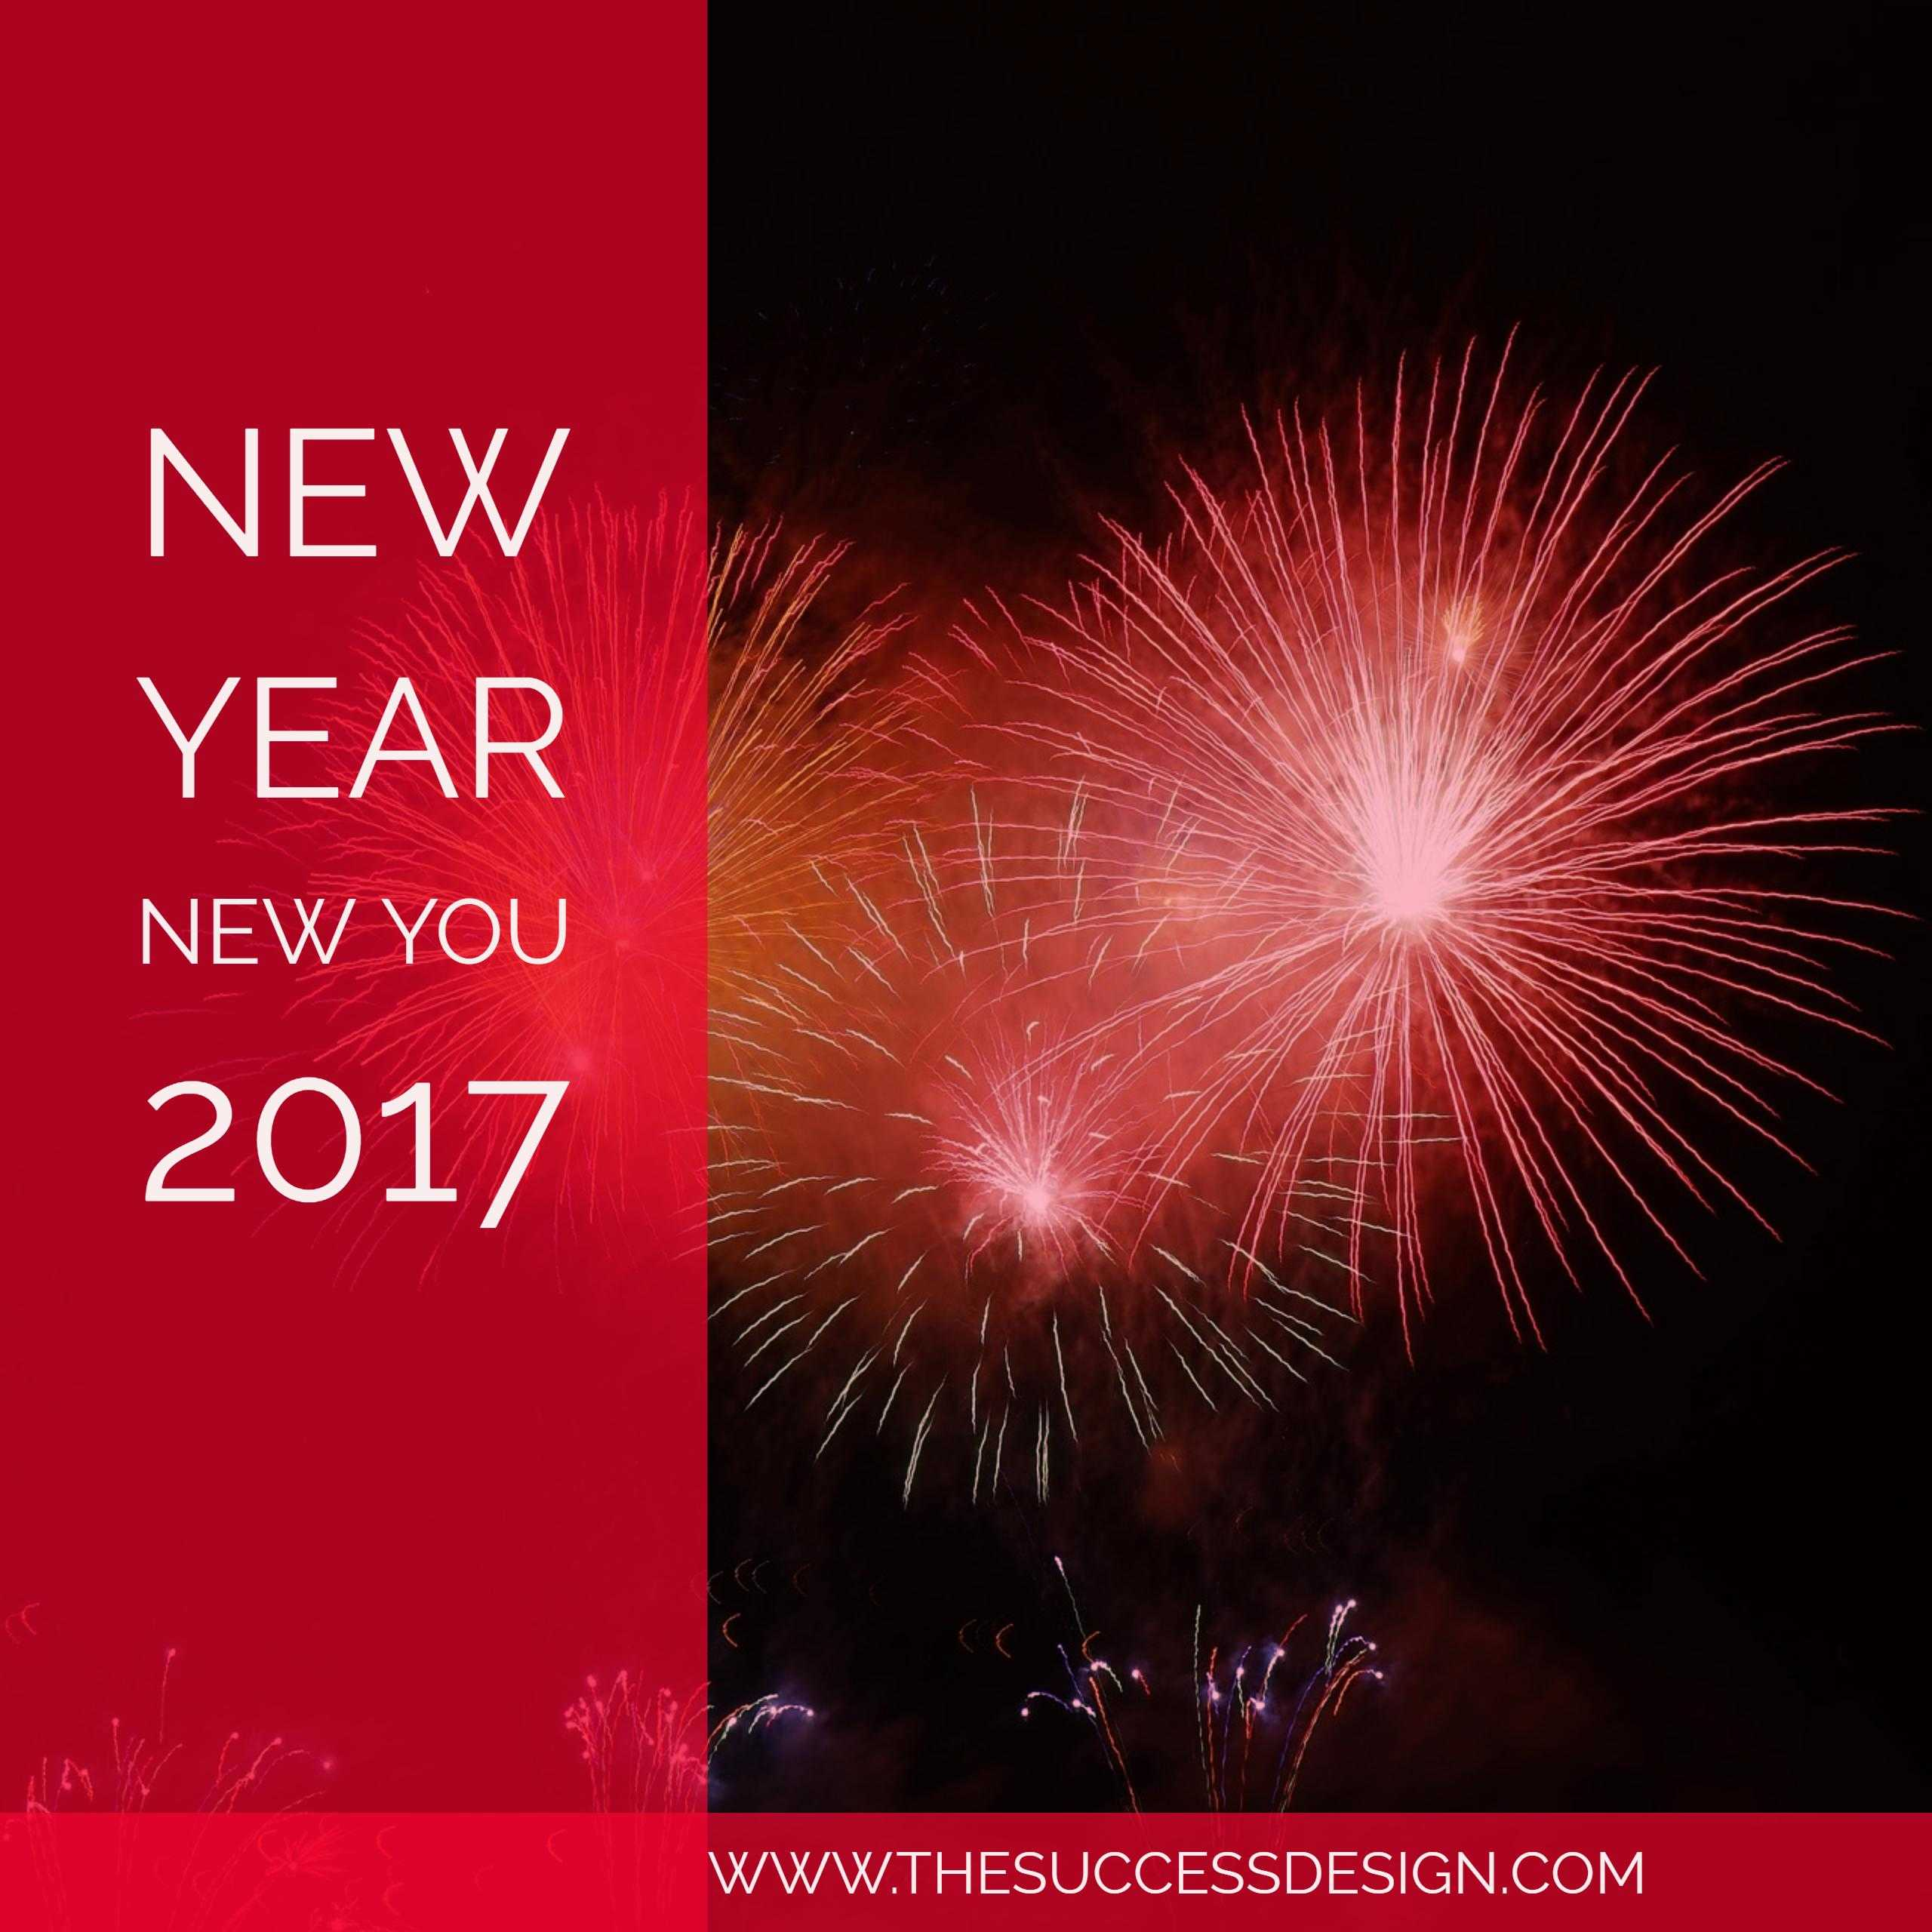 New Year, New You: A Different Approach to Resolutions